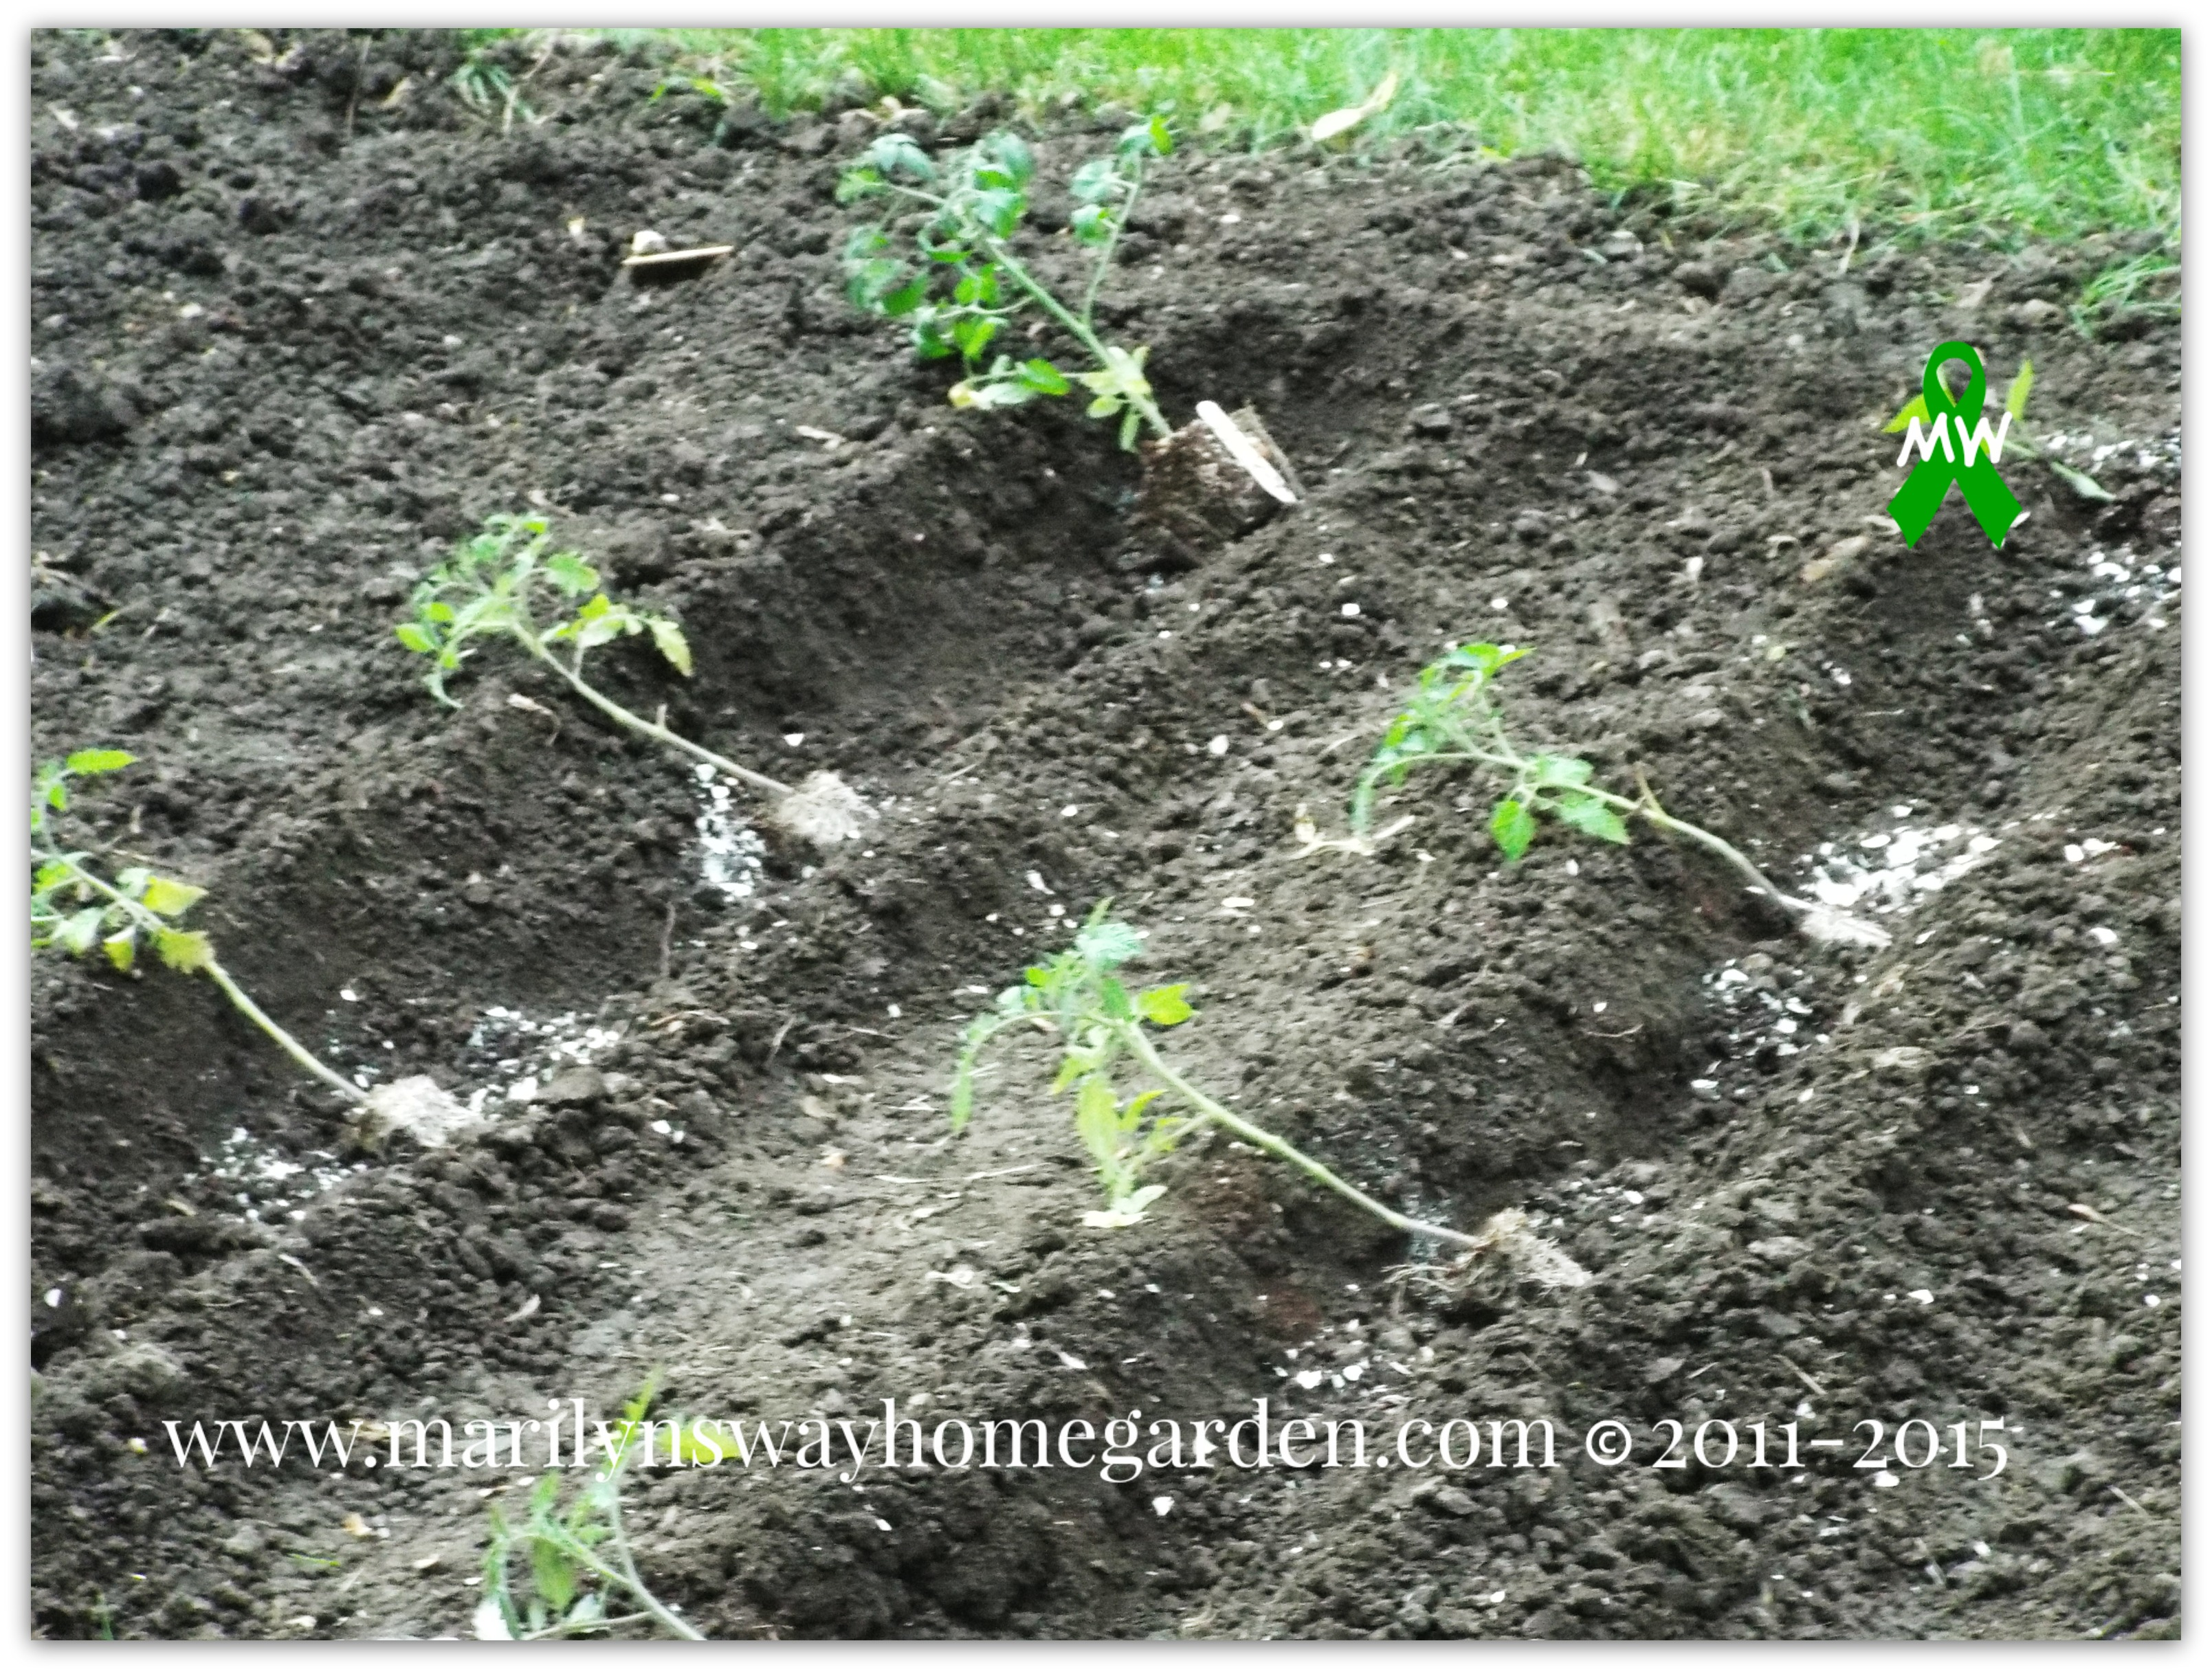 Once the trenches are done you want to plant your tomatoes and peppers as deep as you can in order for them to establish a good root system. Using the trench method is a way to accomplish this.